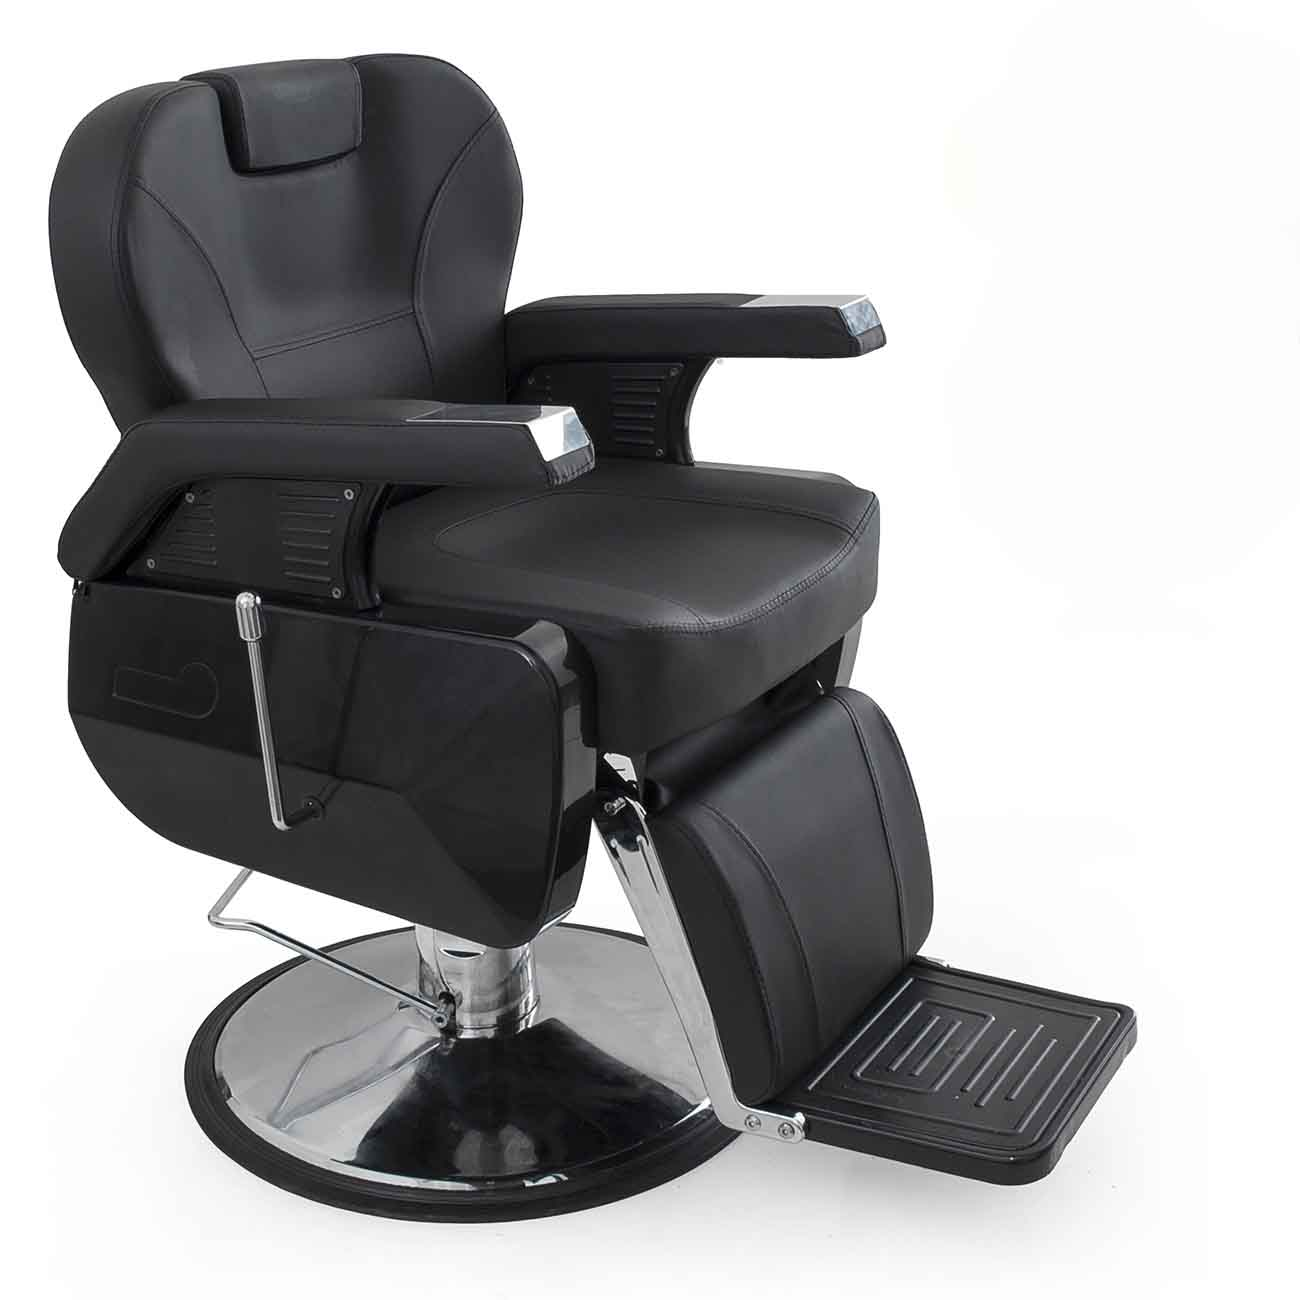 All Purpose Hydraulic Recline Barber Chair Salon Beauty Spa Shampoo Styling 1